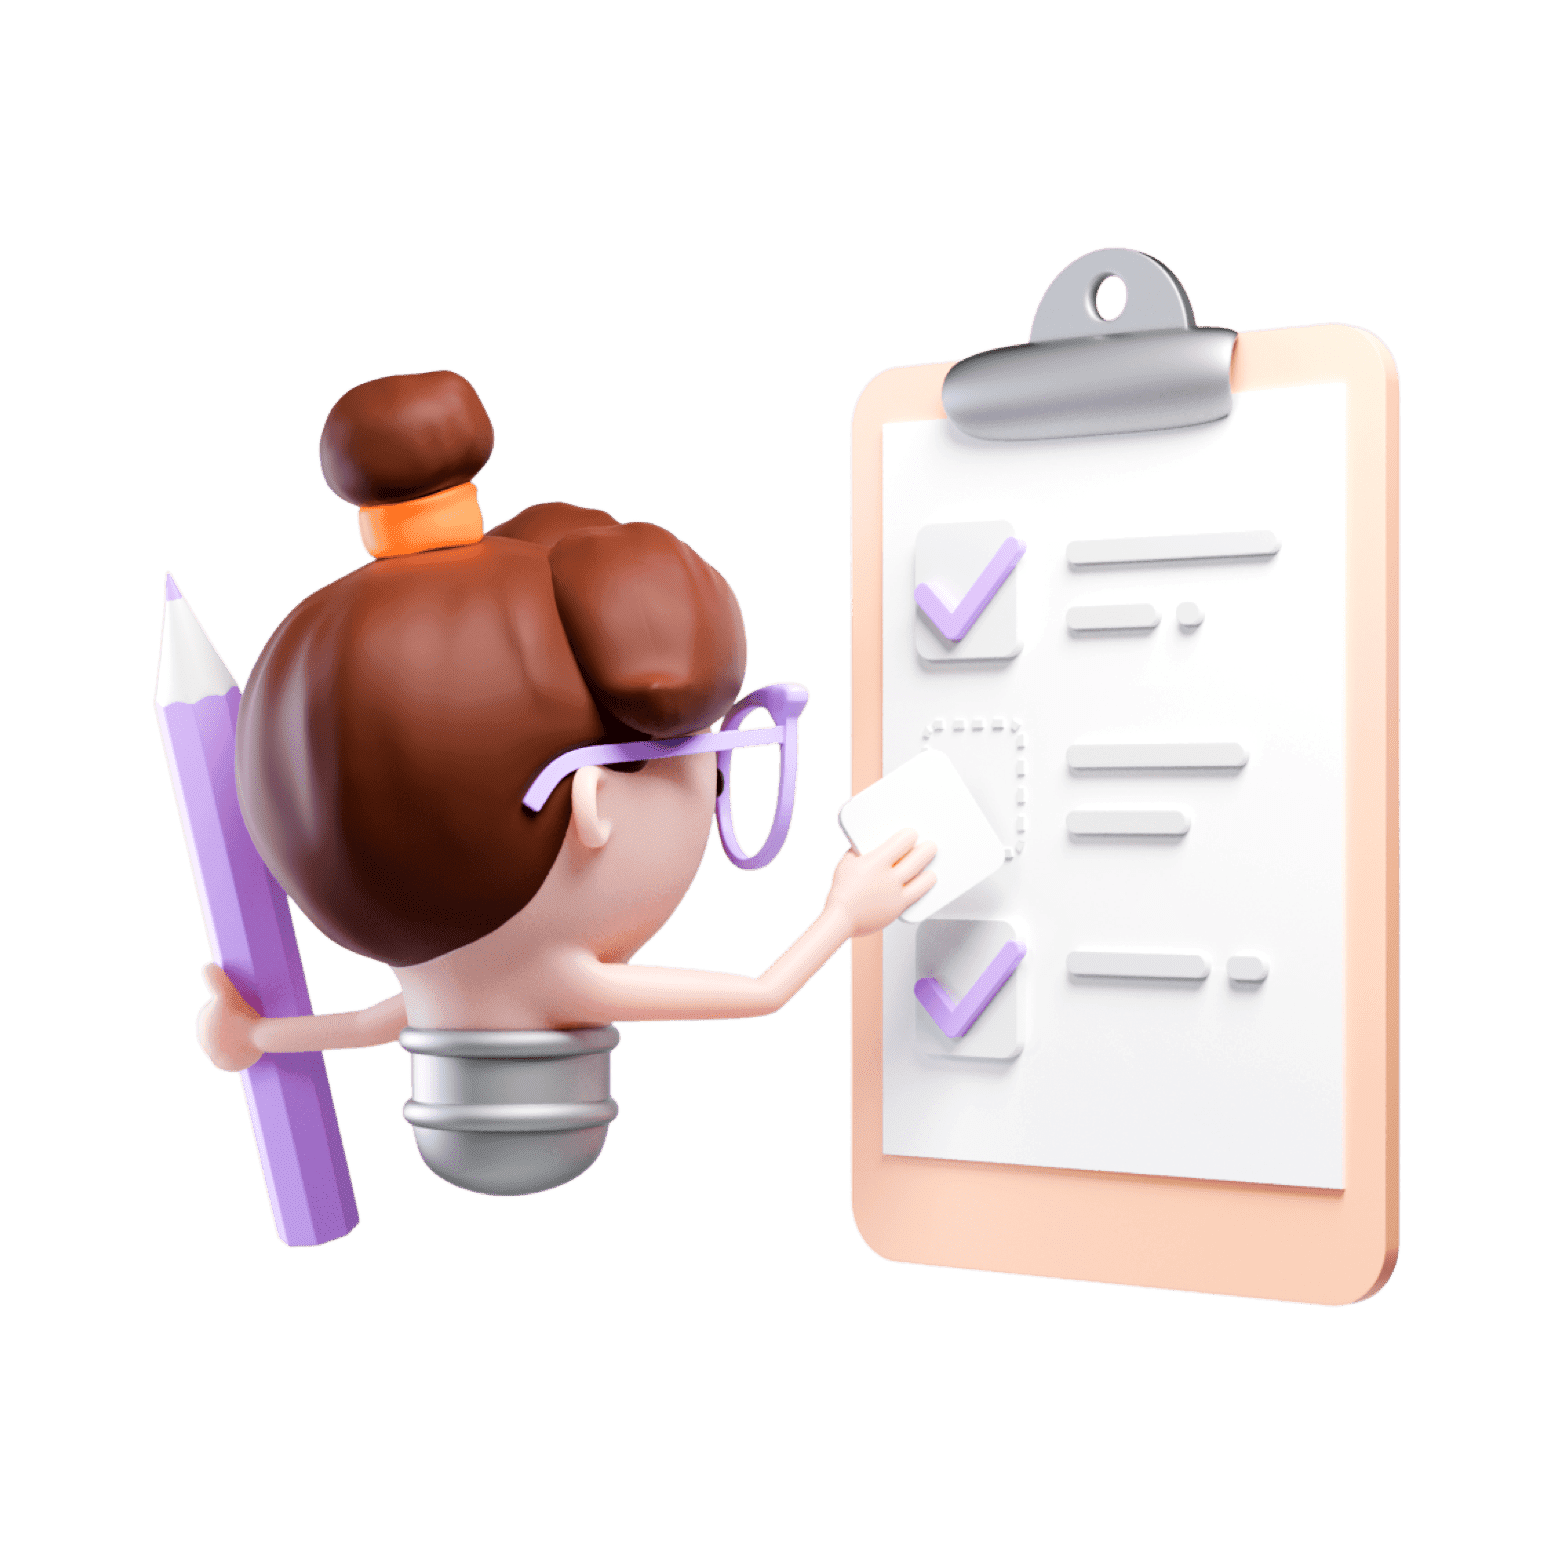 The Complete Start Your Business Checklist